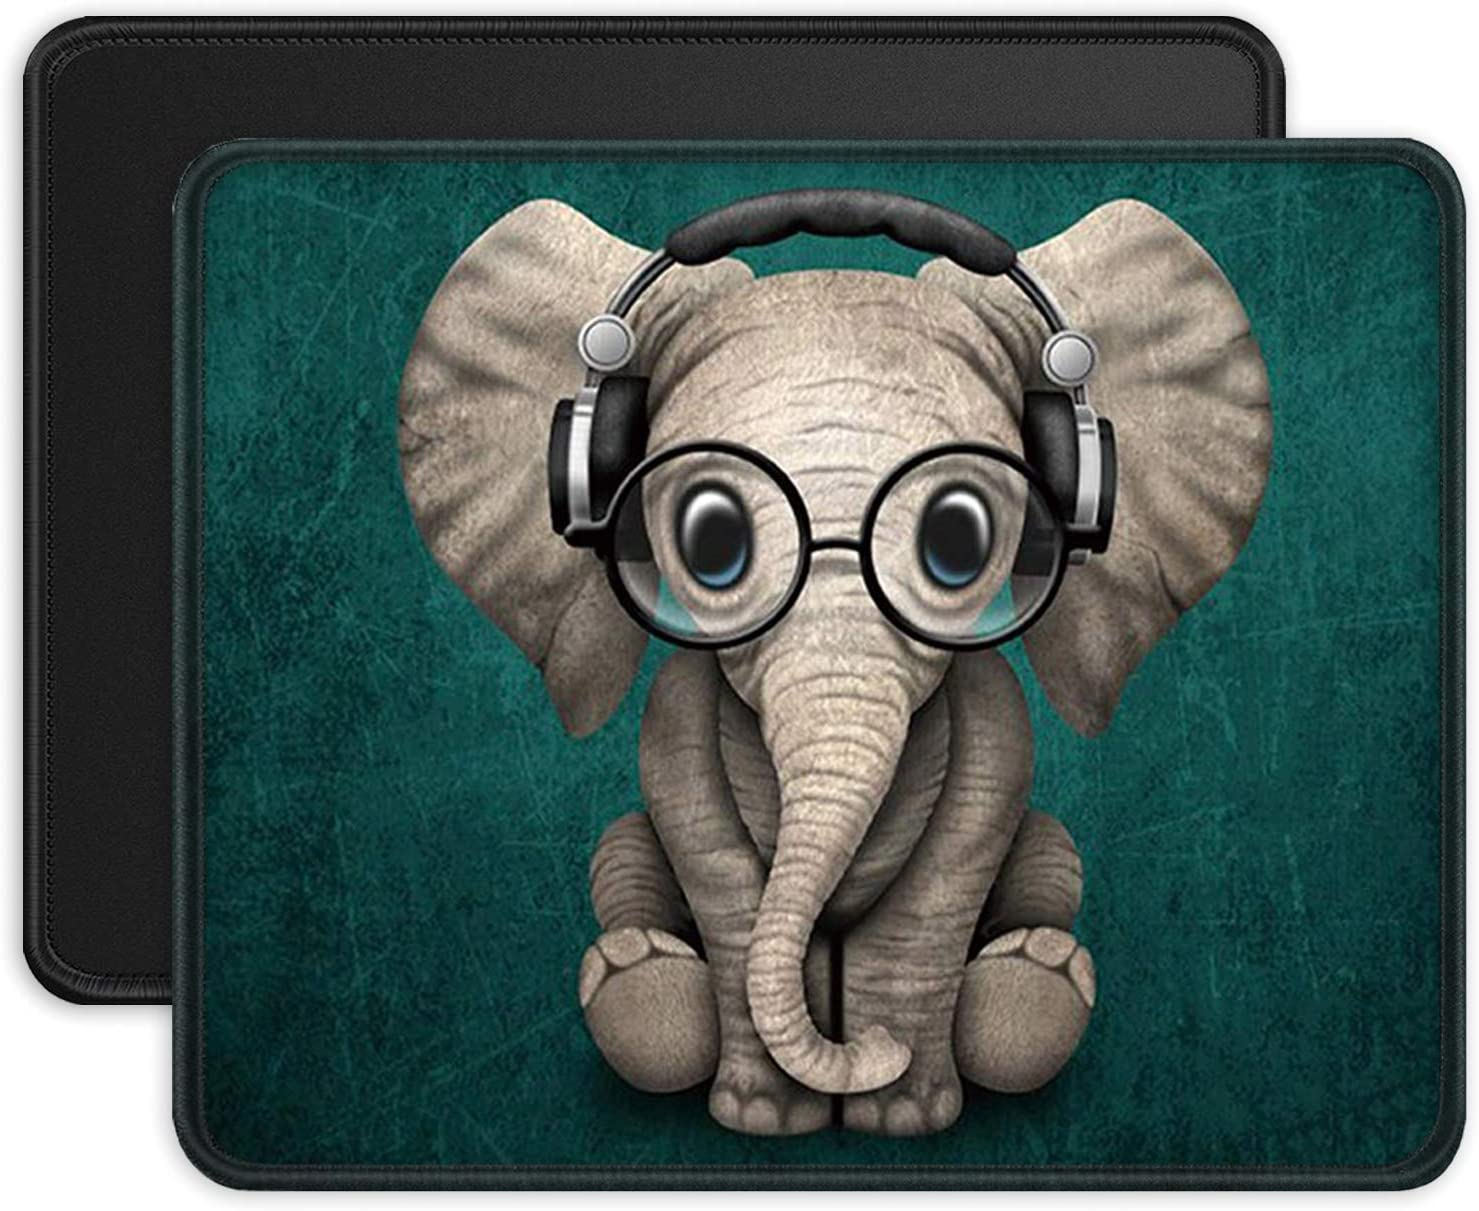 ITNRSIIET Mouse Pads [2-Pack] with Stitched Edges, Premium-Textured Mouse Mat Pad, Non-Slip Rubber Base Mousepad for Laptop, Computer, 10.2×8.3×0.12 inches, Cute Elephant + Black